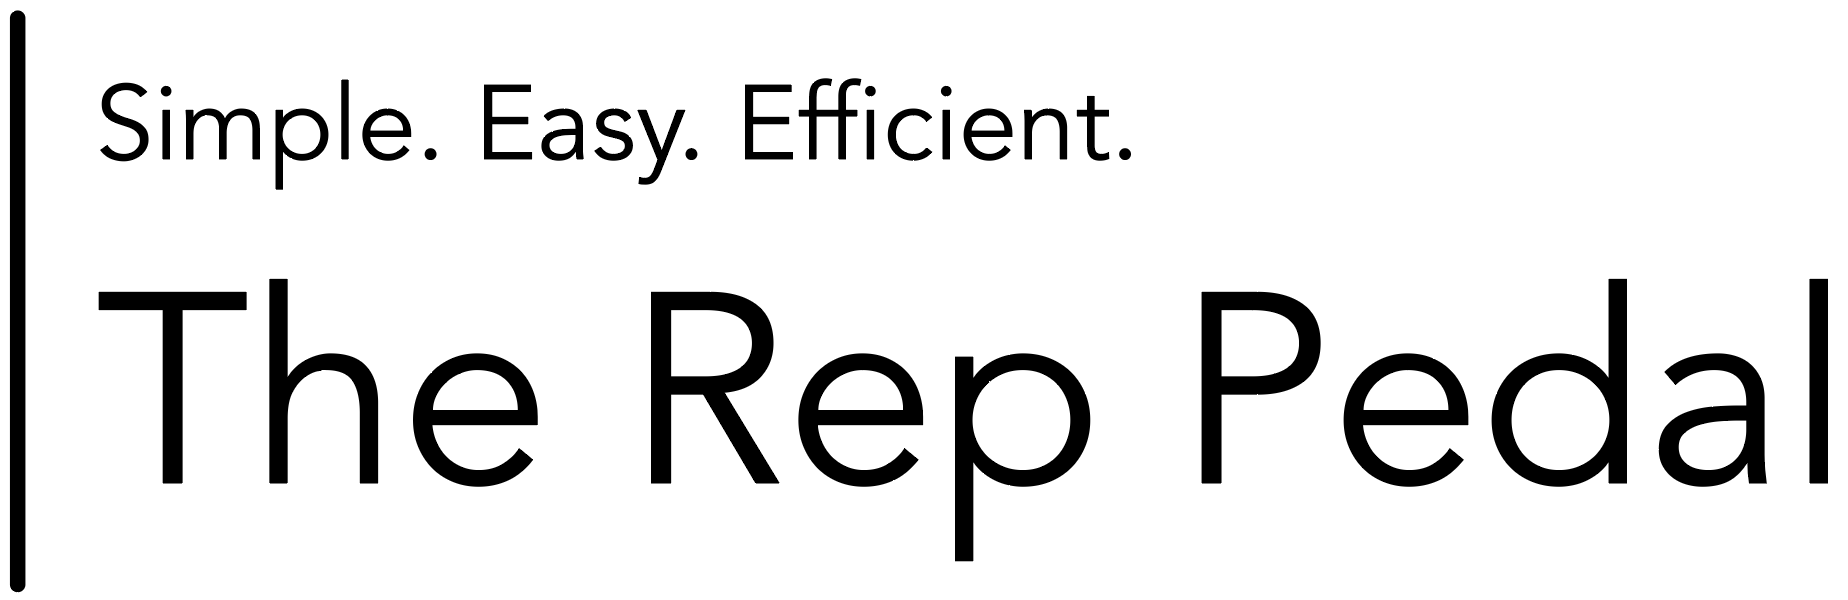 prop-statement.png